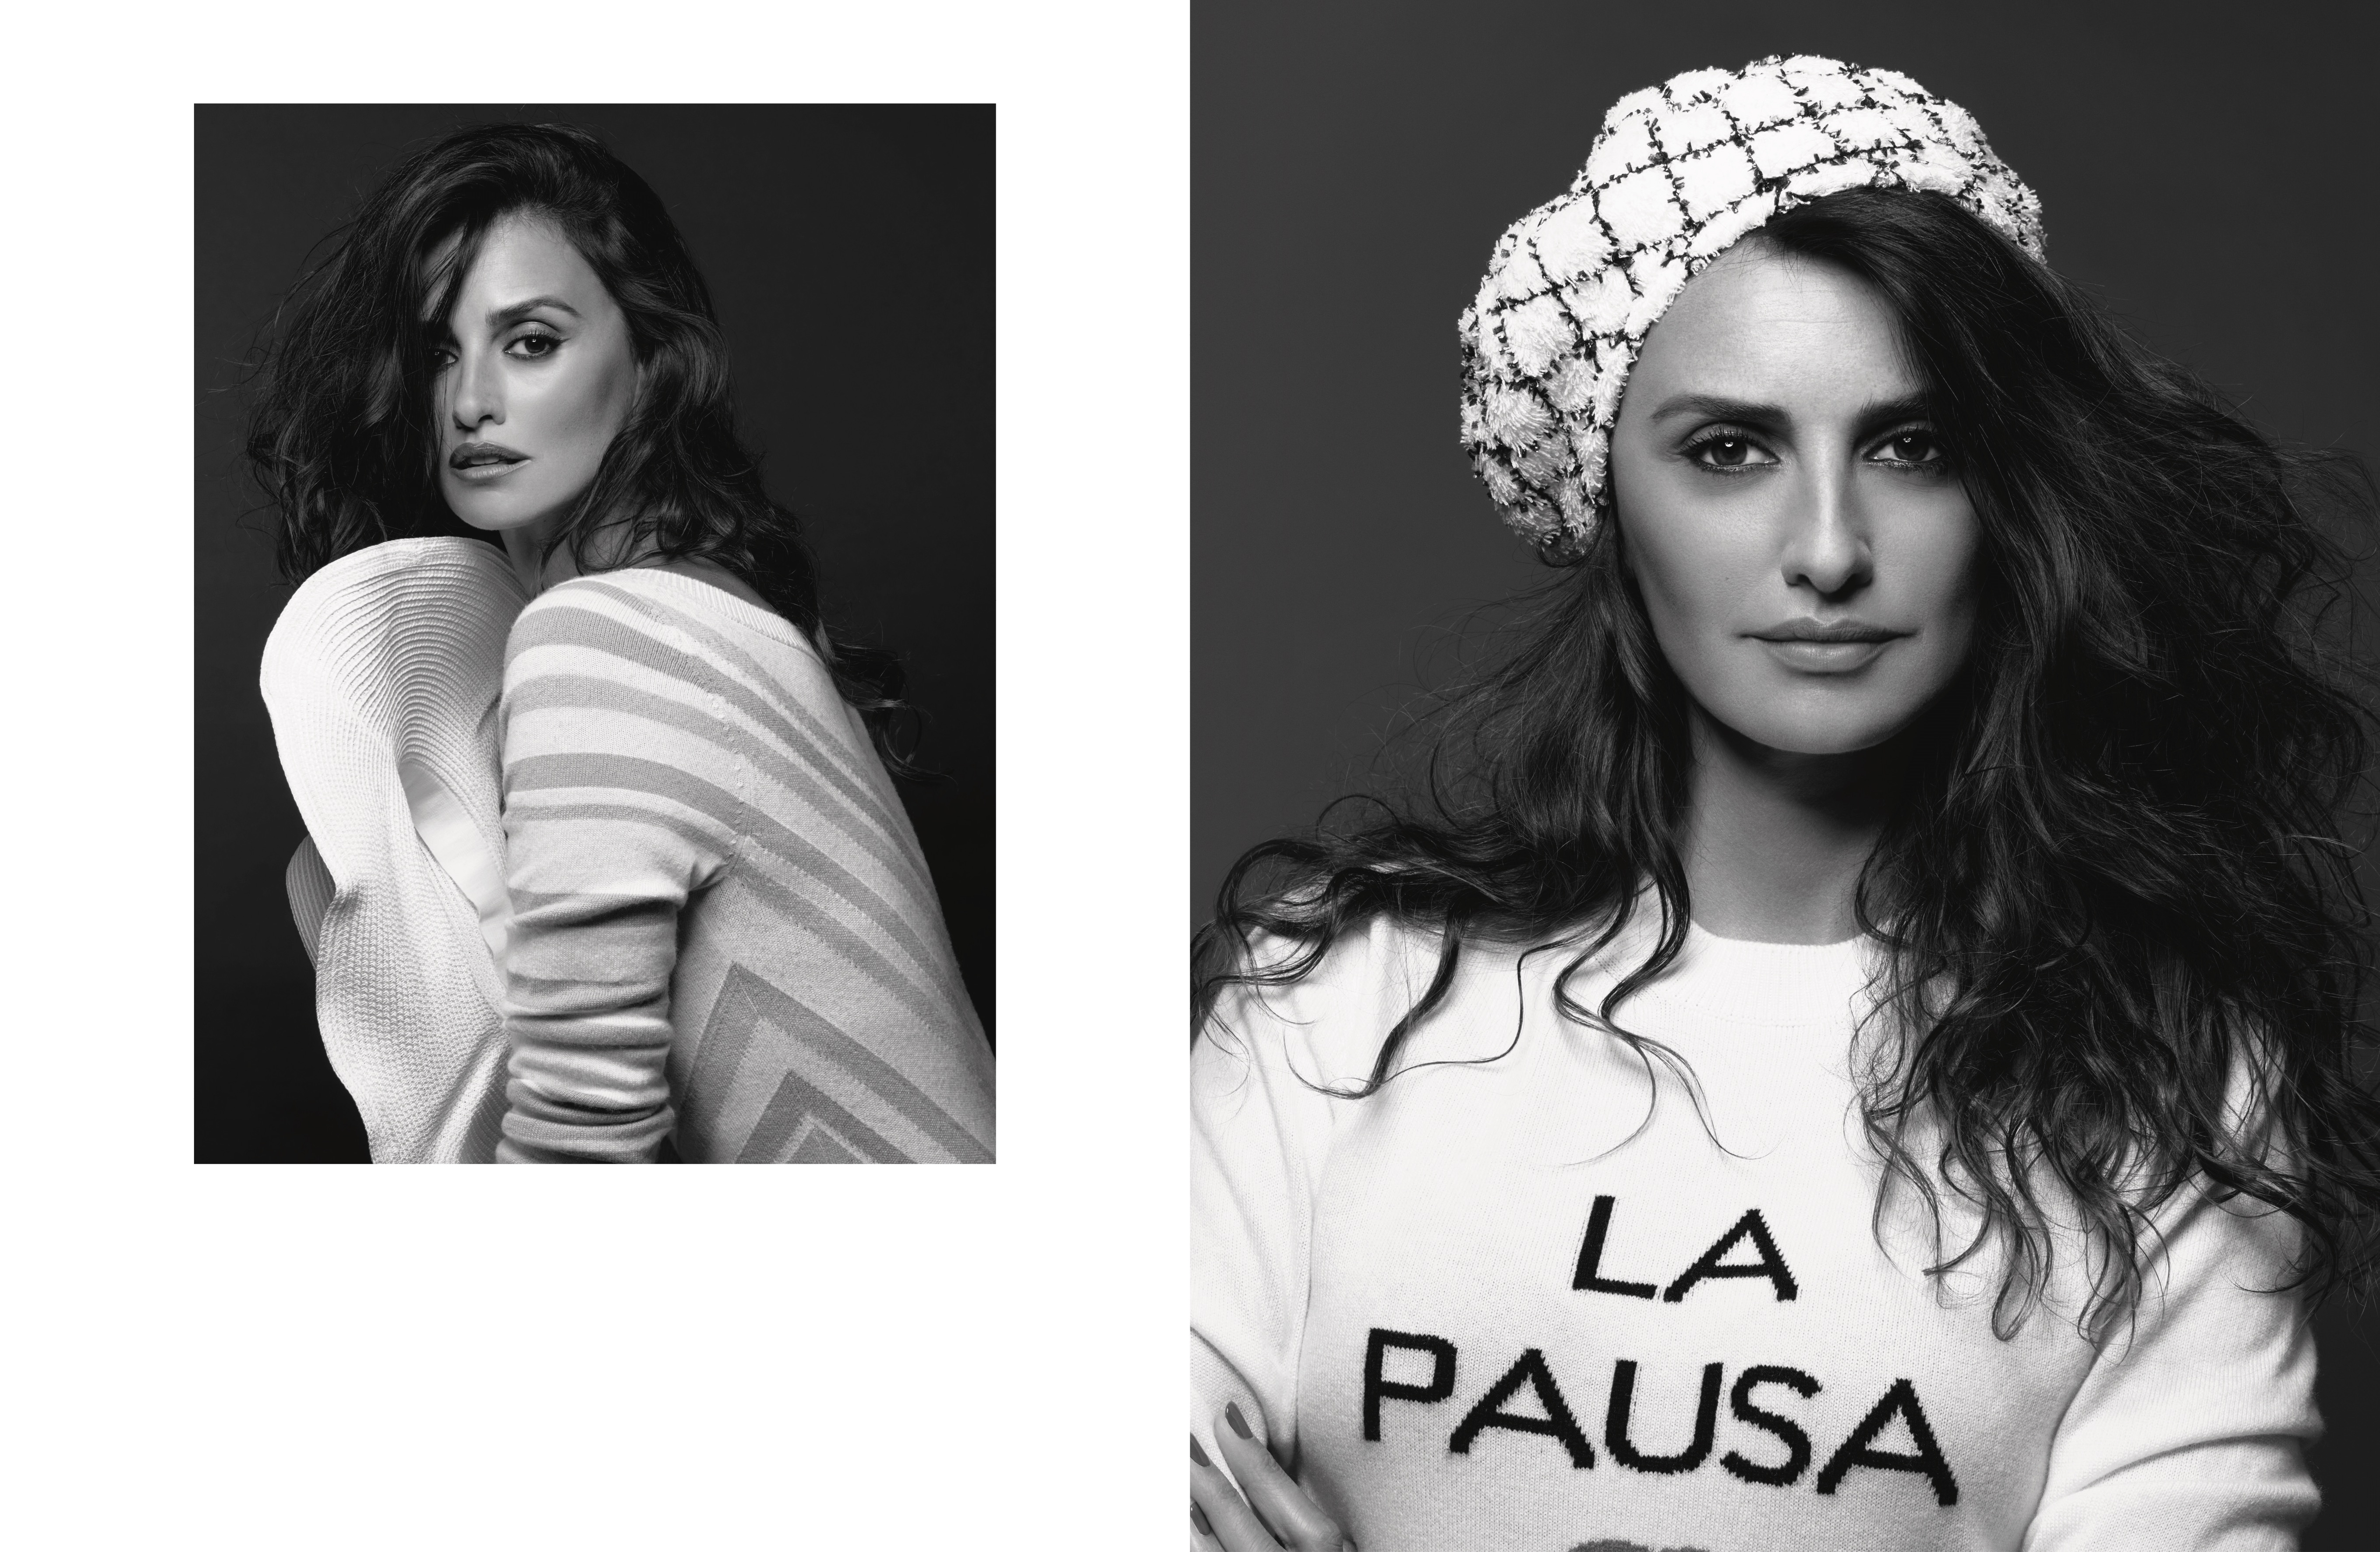 Penélope Cruz in the Chanel cruise ads.